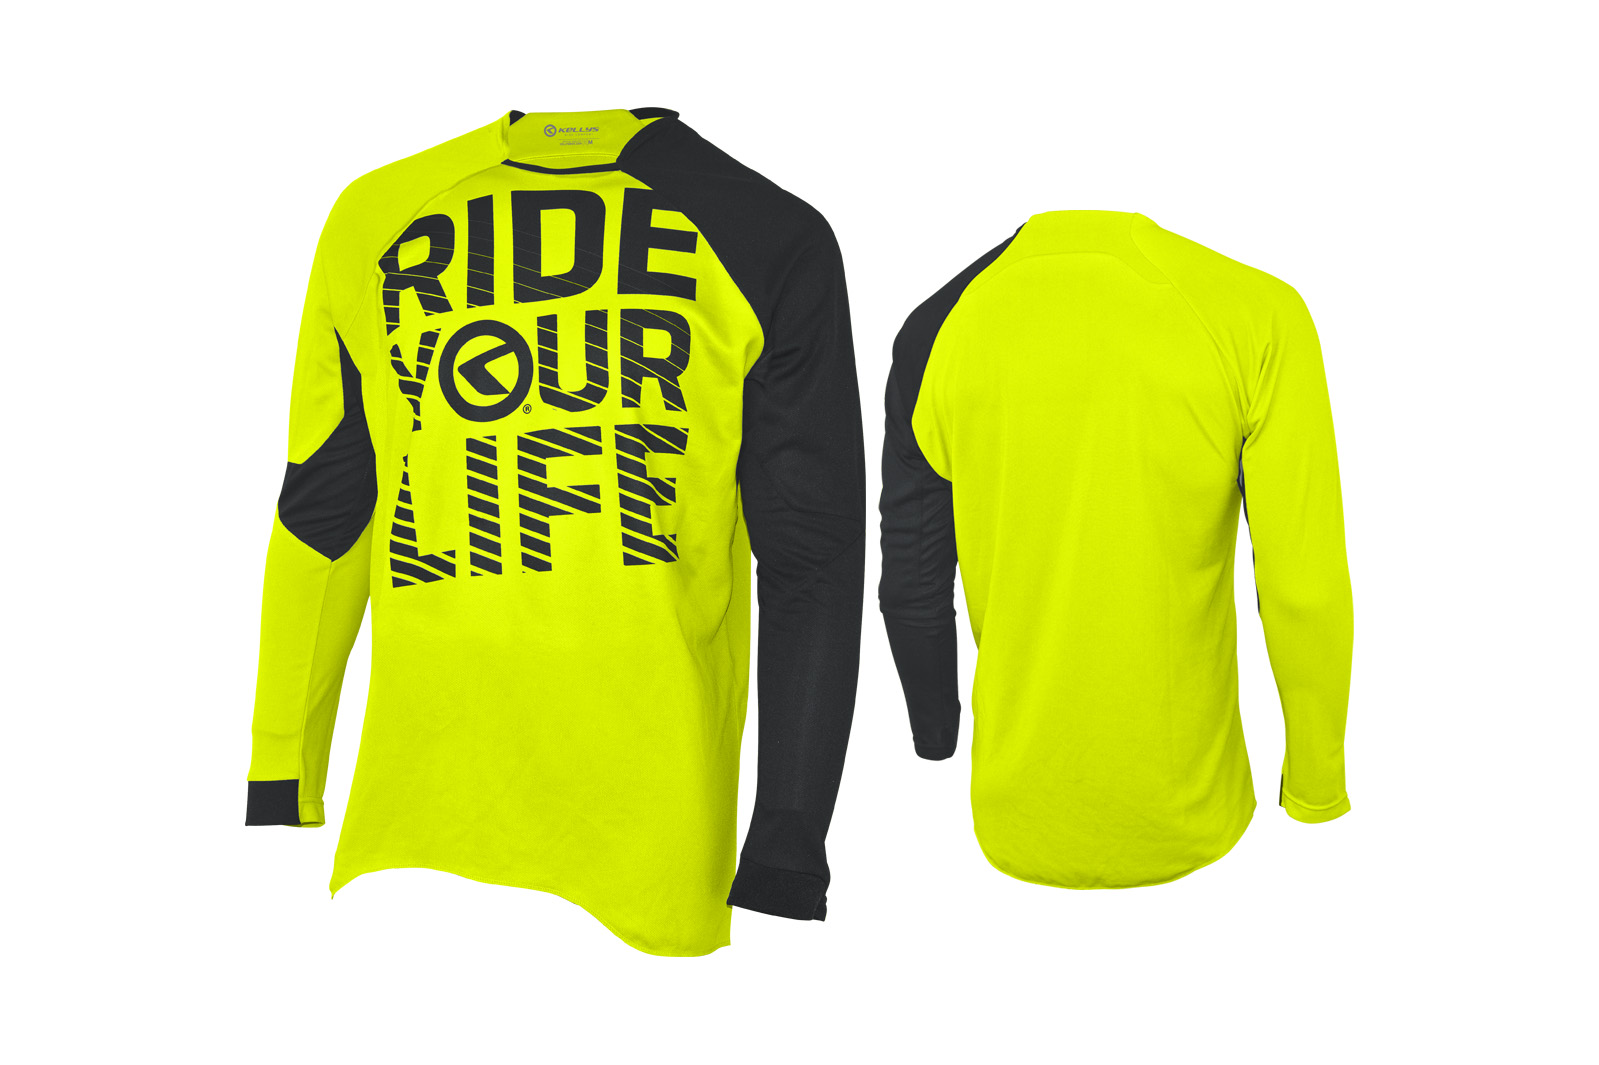 Langarmtrikot KELLYS RIDE YOUR LIFE lime - L - Langarmtrikot KELLYS RIDE YOUR LIFE lime - L